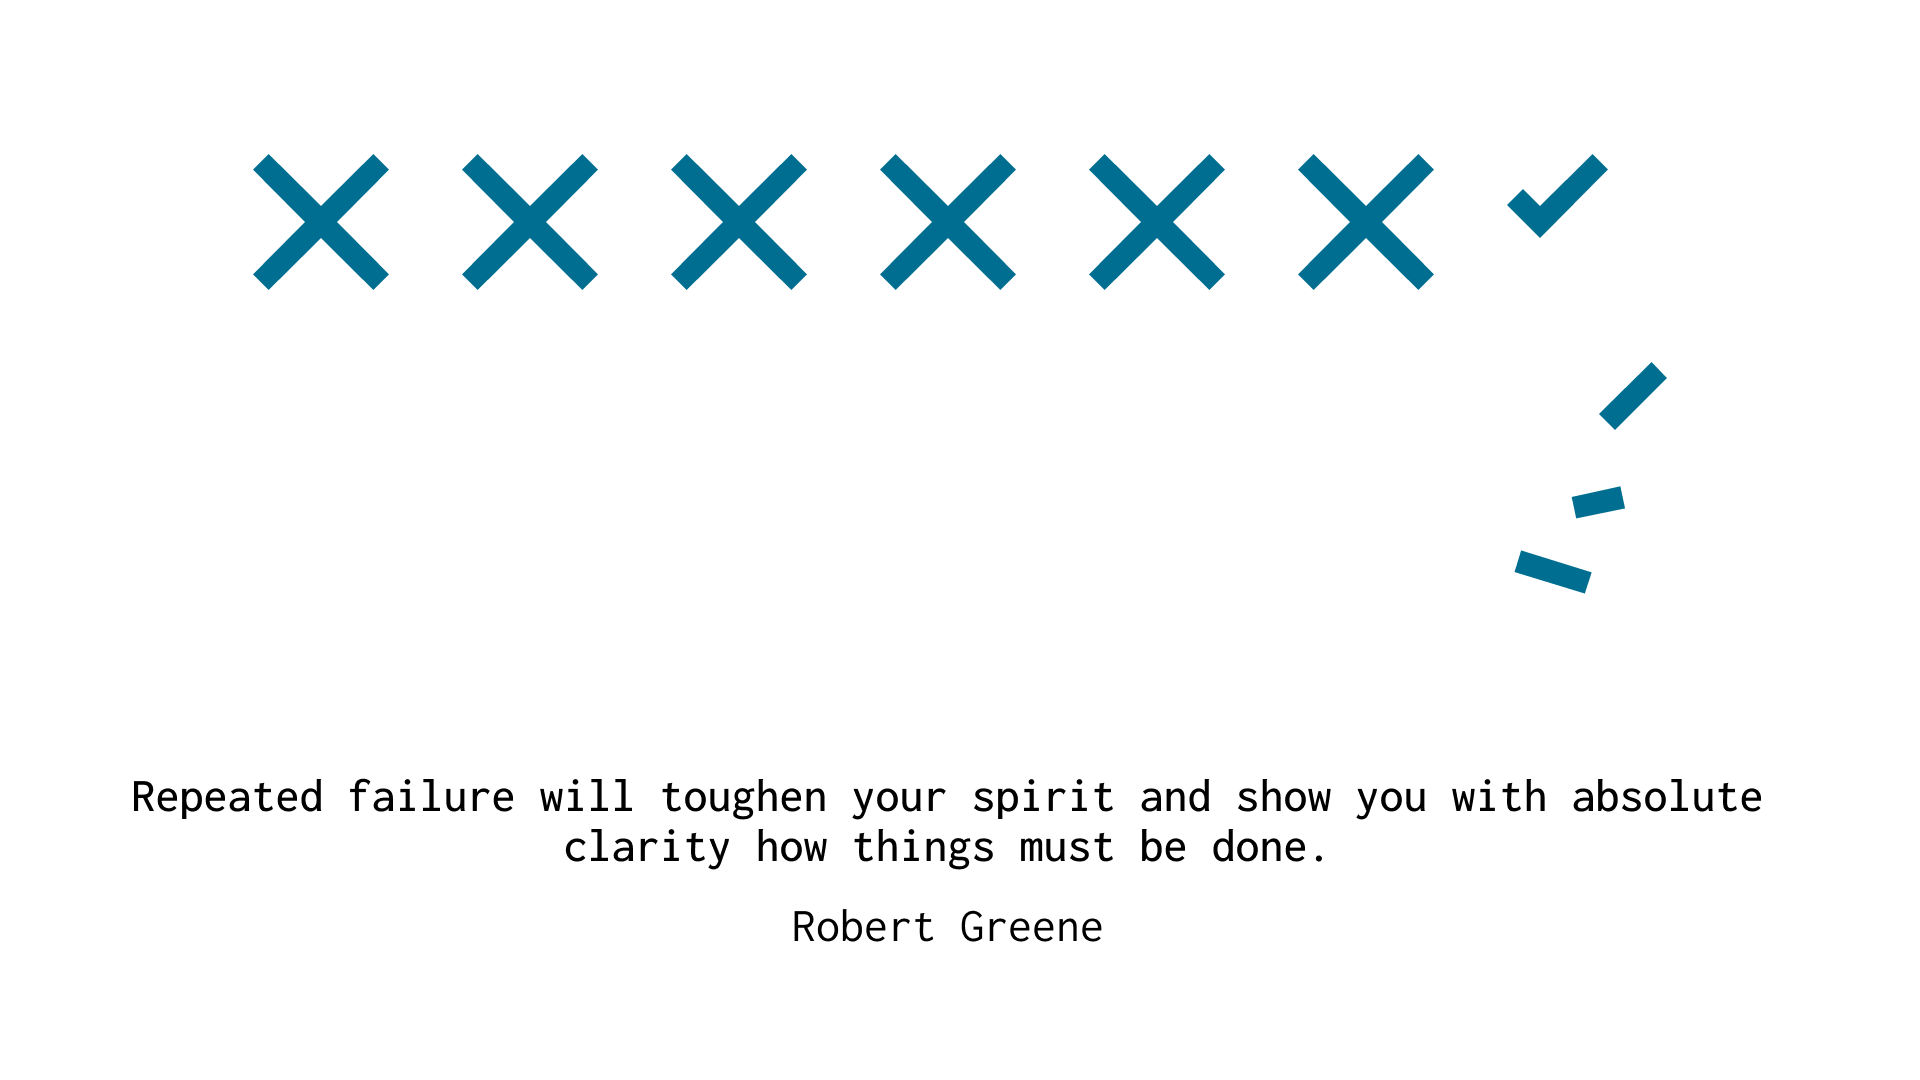 """""""Repeated failure will toughen your spirit and show you with absolute clarity how things must be done."""" -Robert Greene [1920×1080]"""